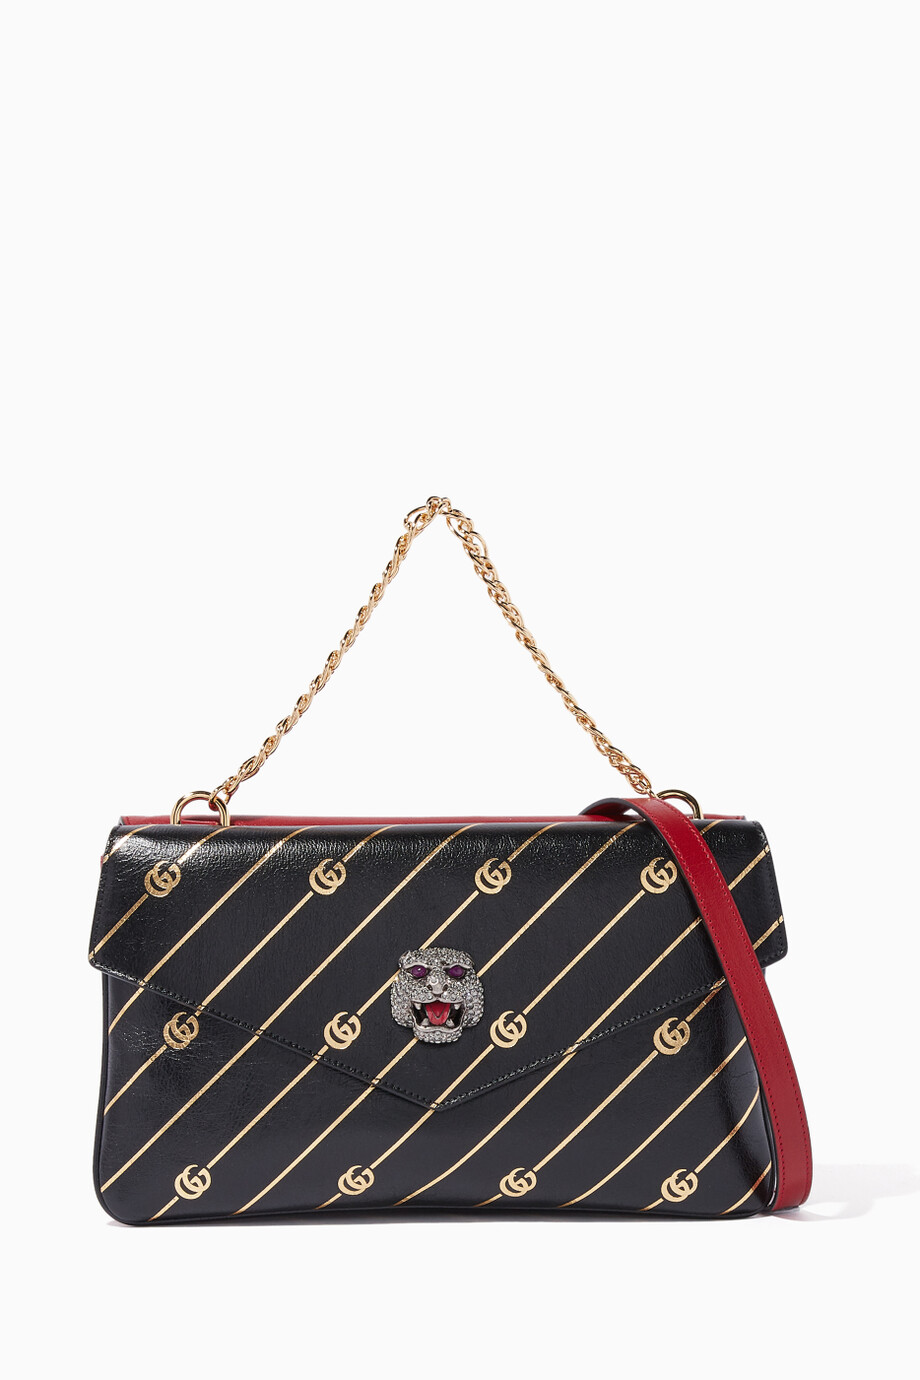 59686637fa02 Shop Gucci Red Black & Gold Thiara Medium Double Shoulder Bag for ...